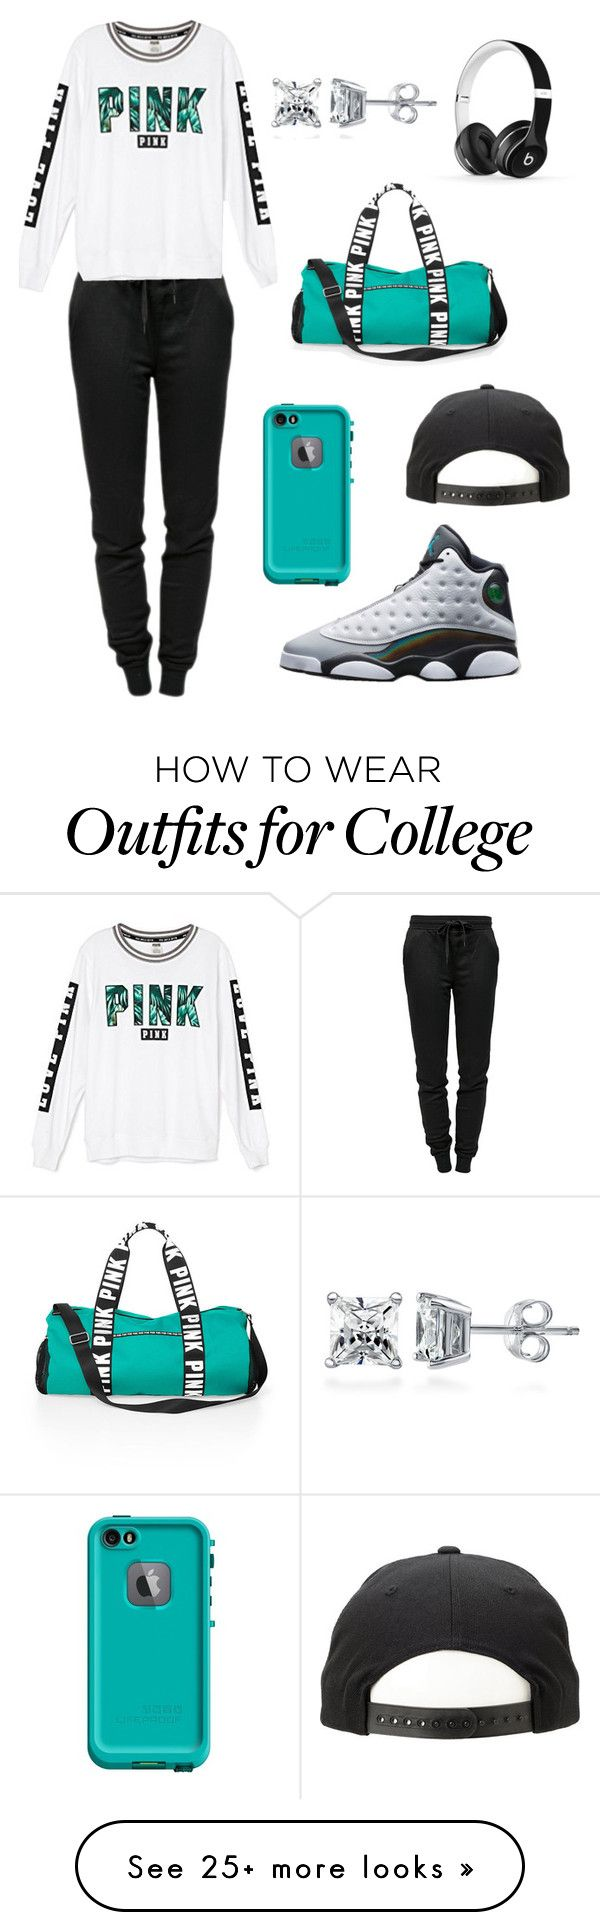 """""""All My Friends~ Snakehips ft. Tinashe & Chance the Rapper"""" by ieshia-dumas on Polyvore featuring T By Alexander Wang, Victoria's Secret, Retrò, Victoria's Secret PINK, LifeProof, Beats by Dr. Dre and BERRICLE"""